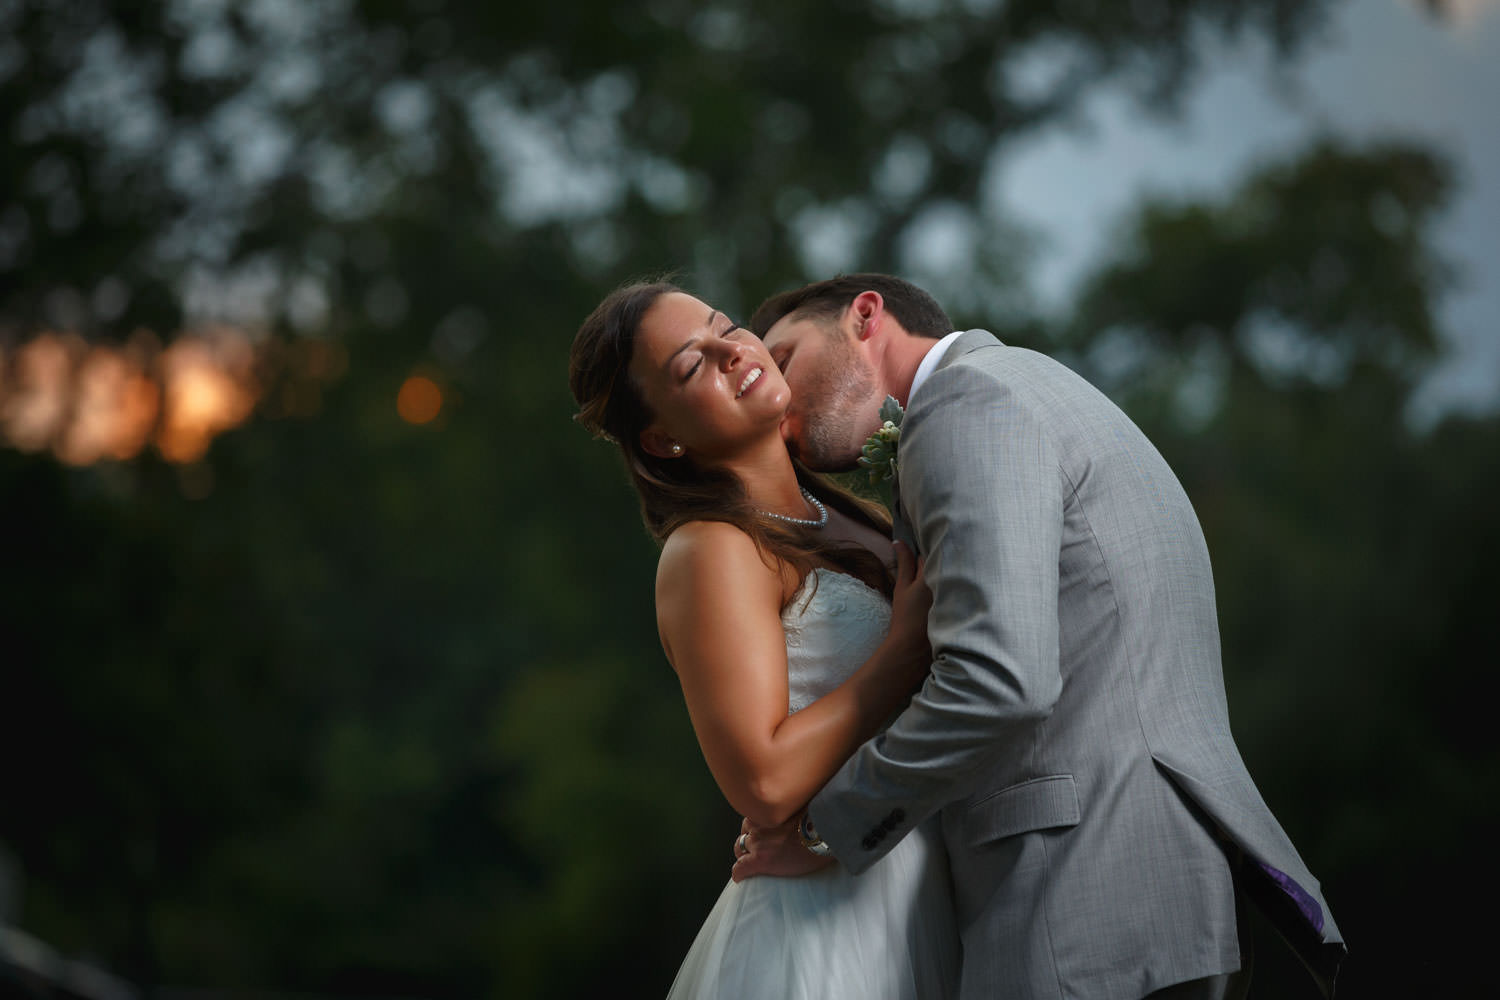 Bride leaning back while groom is kissing her neck with blurred background